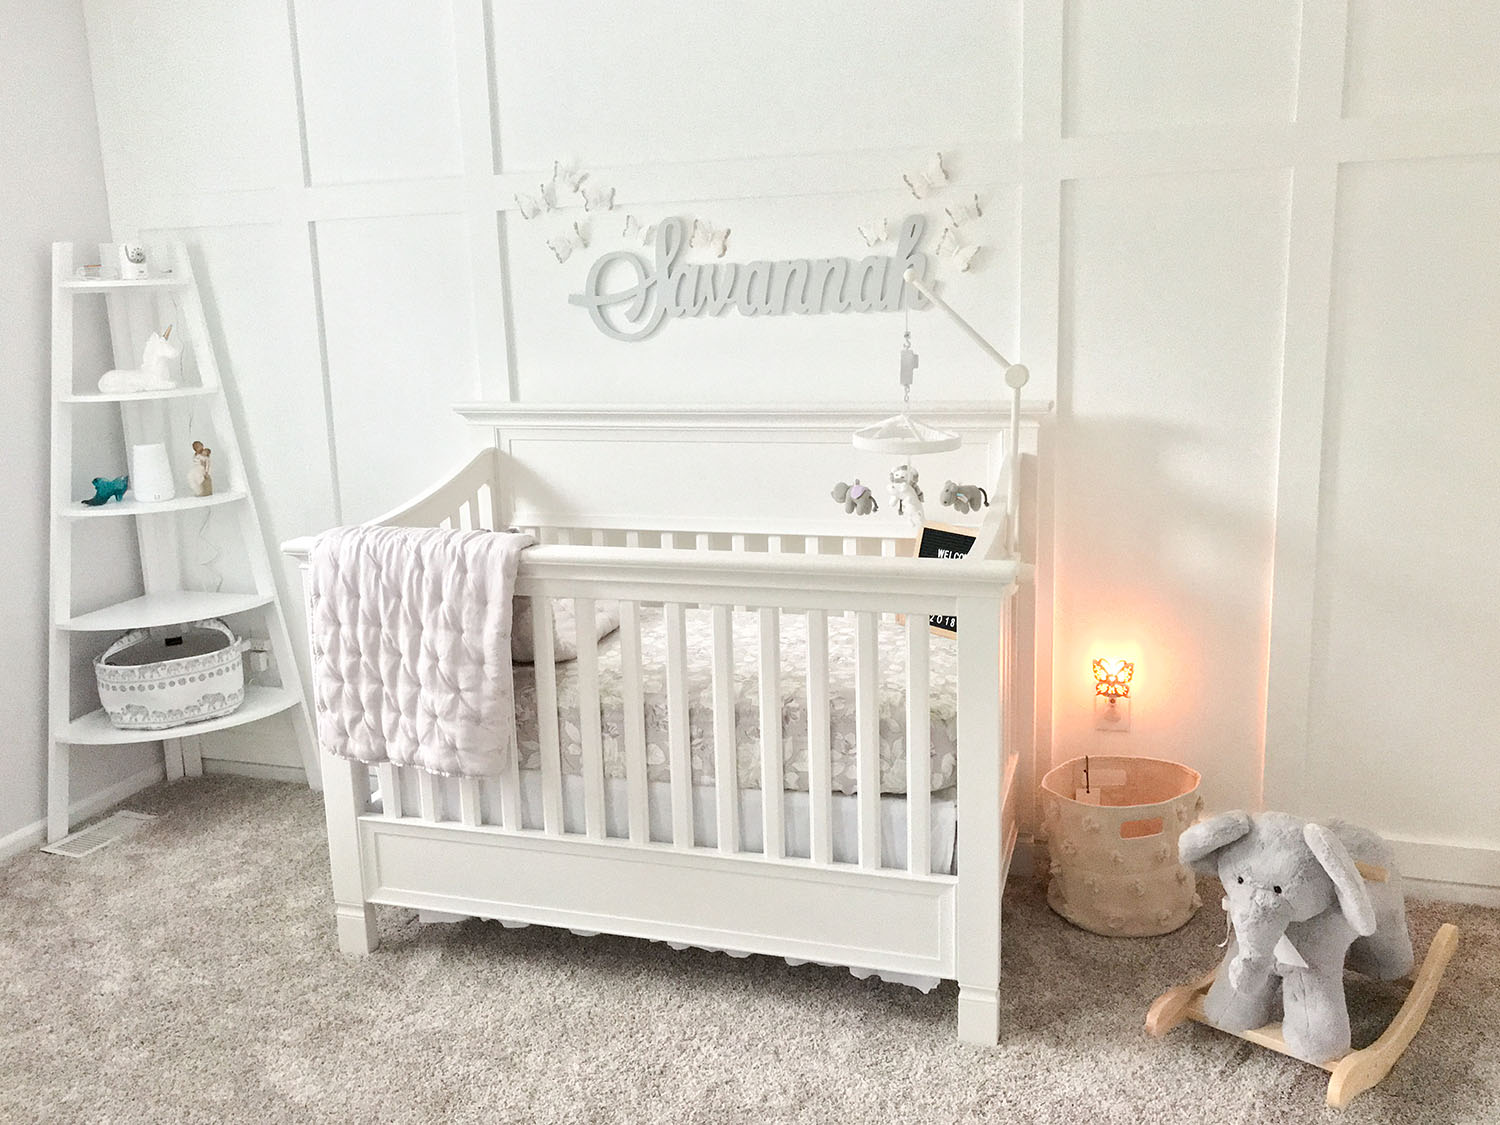 Lavender and Grey Baby Nursery Inspo | Brighter Darling's Baby Nursery Tour | Pottery Barn Larkin Crib in Simply White with Lavender and Grey Baby Bedding